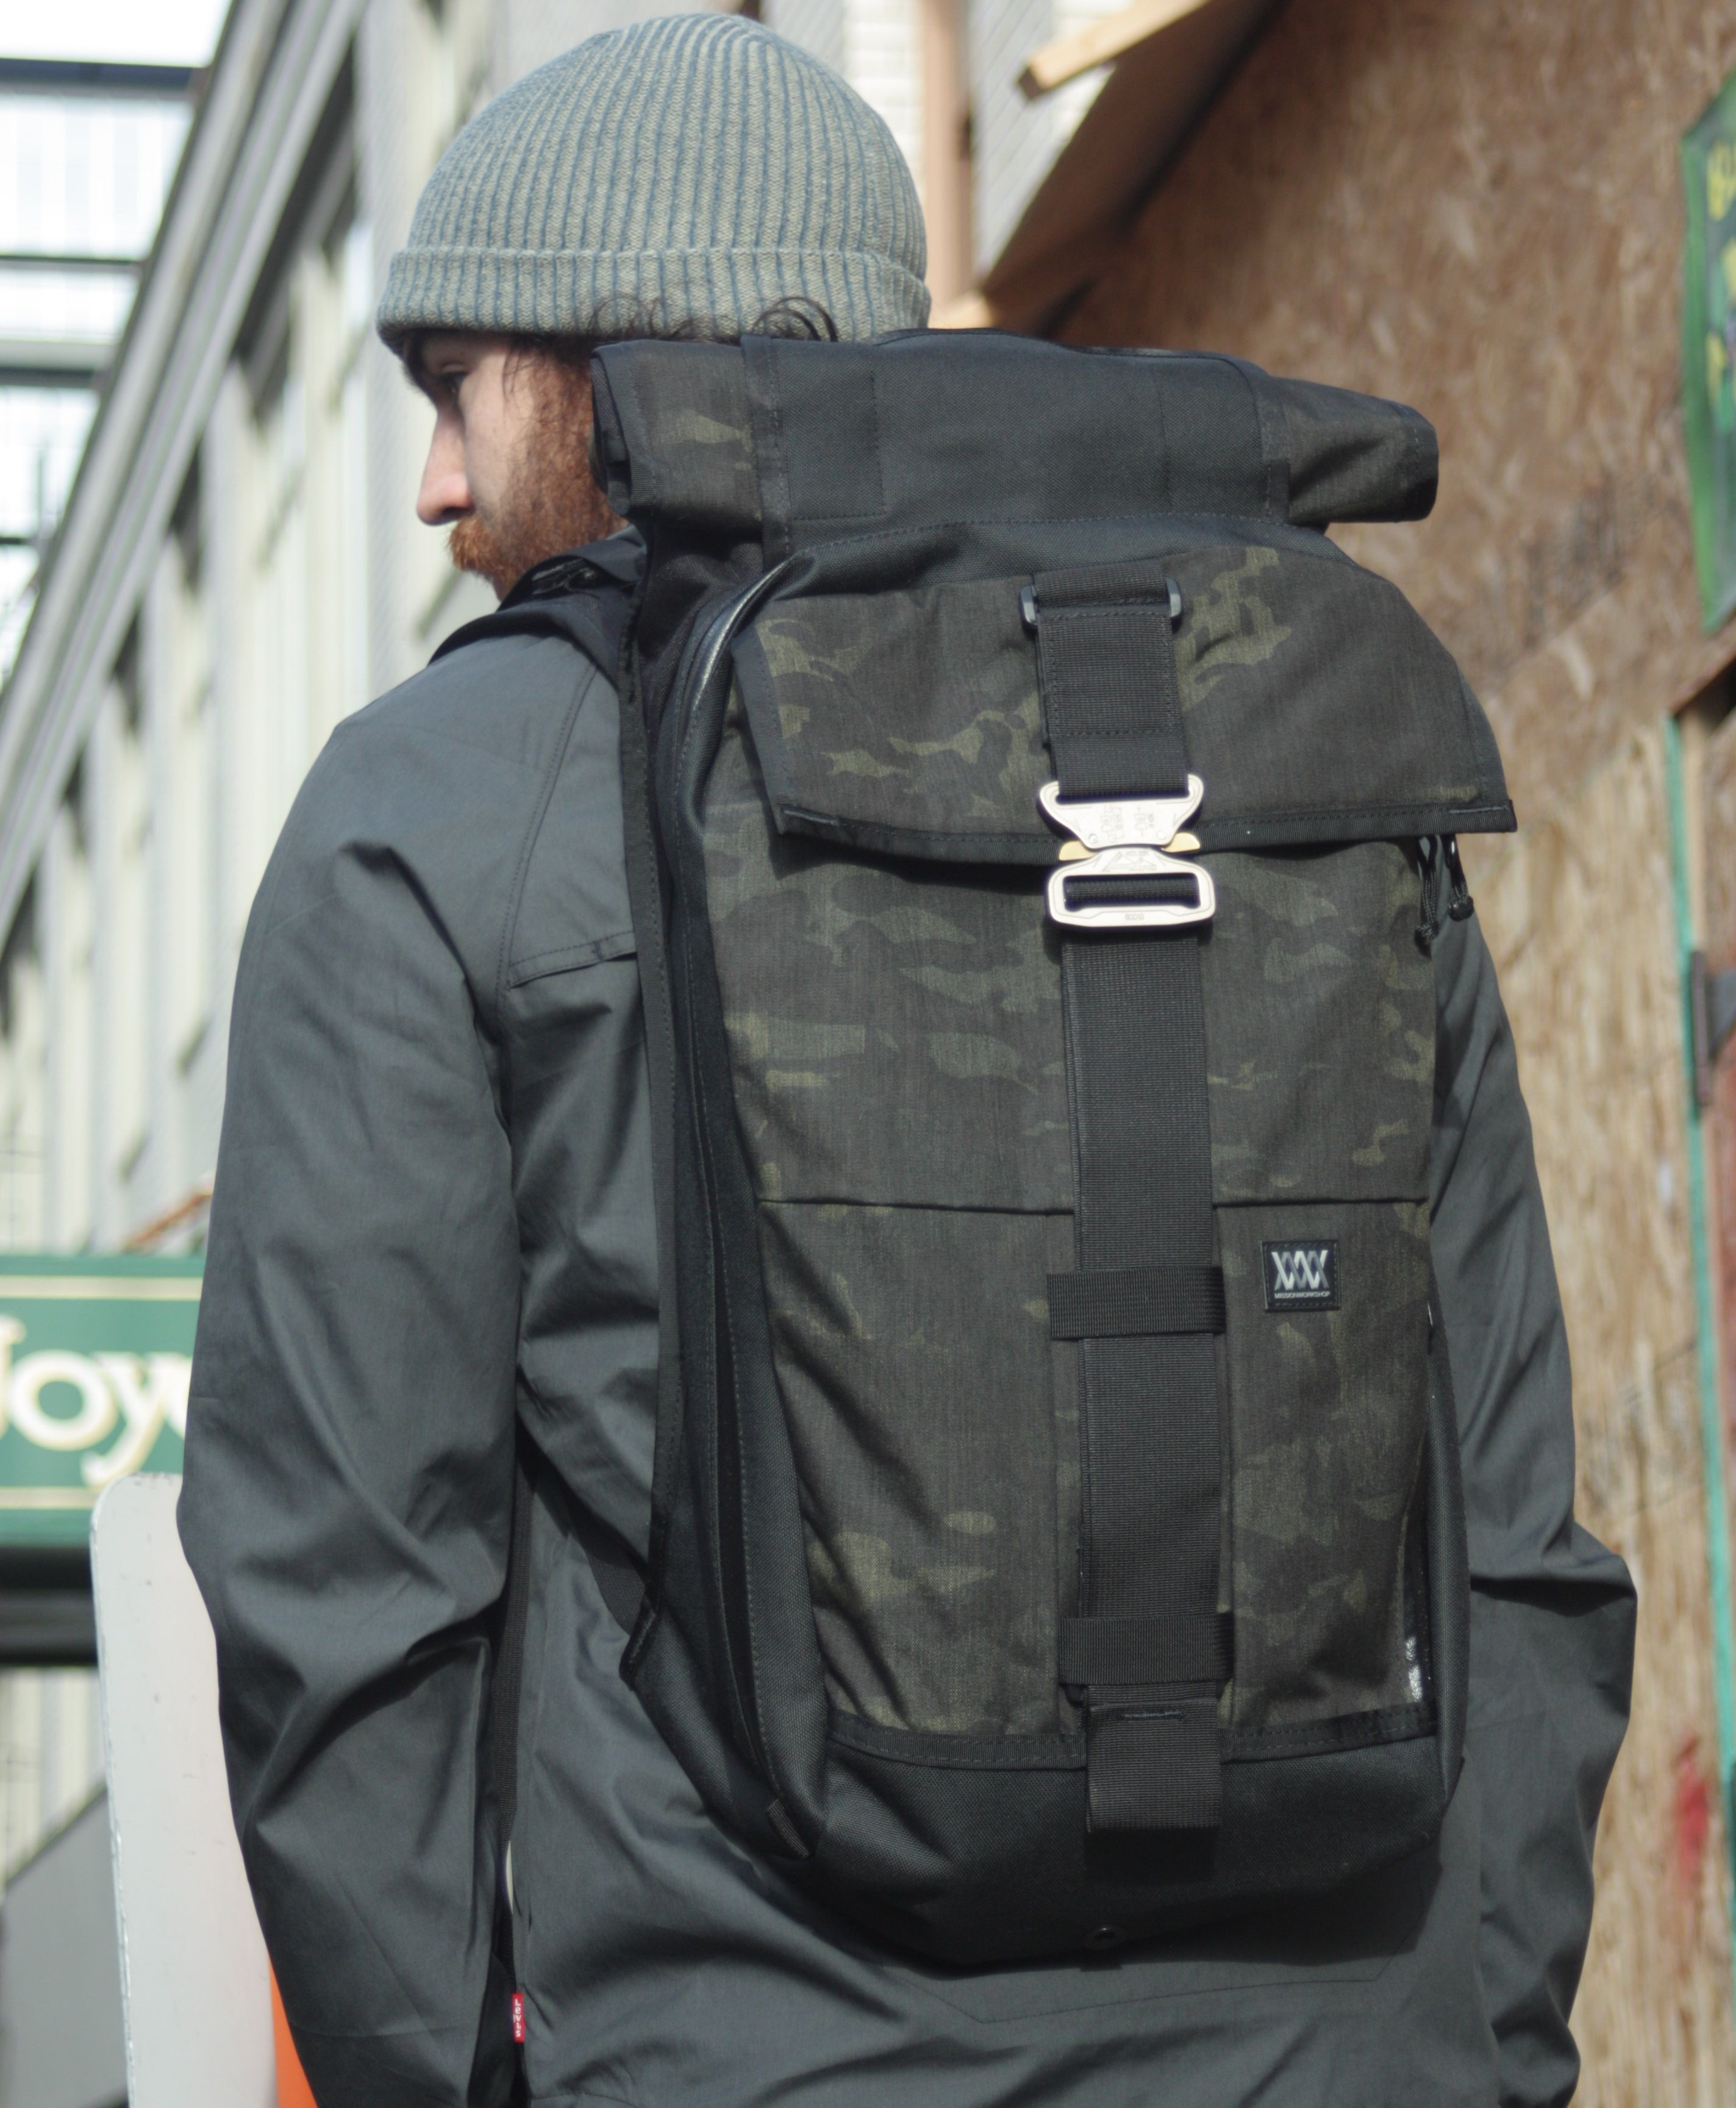 The US made Limited Edition black camo Rambler expandable backpack from Mission Workshop comes with a fine looking buckle from Austrian manufacturer AustriAlpin. These are some of the most versatile bags we've come across, able to expand from 22 to 44 liters!